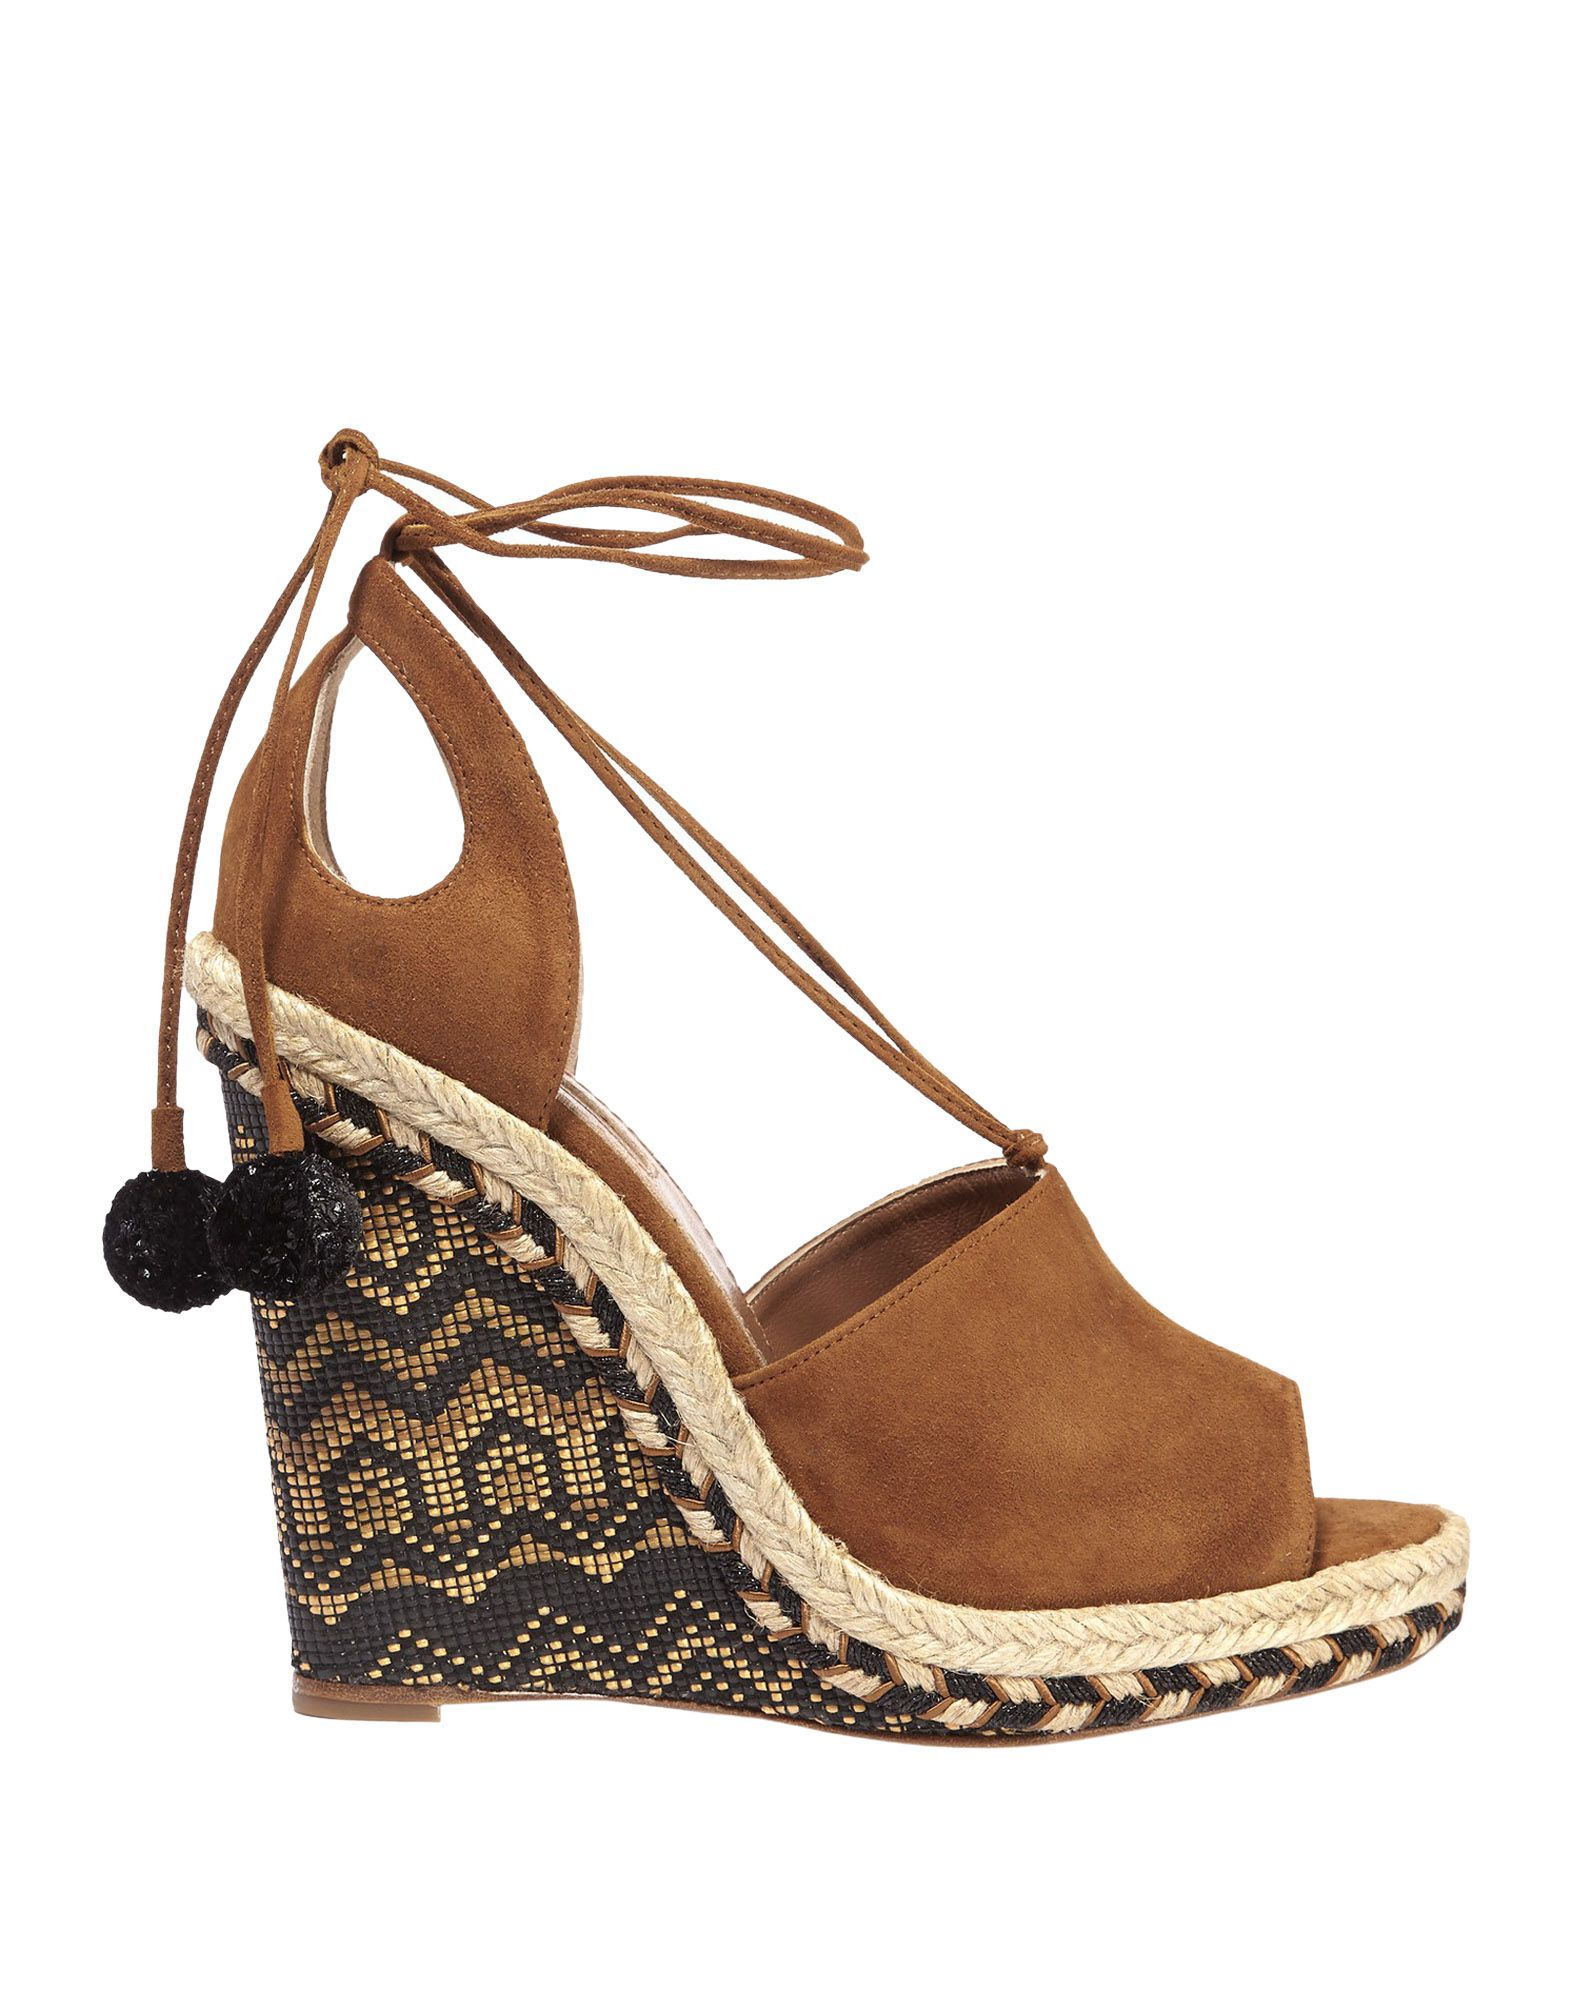 Aquazzura Sandals Sandals - Women Aquazzura Sandals Aquazzura online on  Australia - 11465265NN 98f772